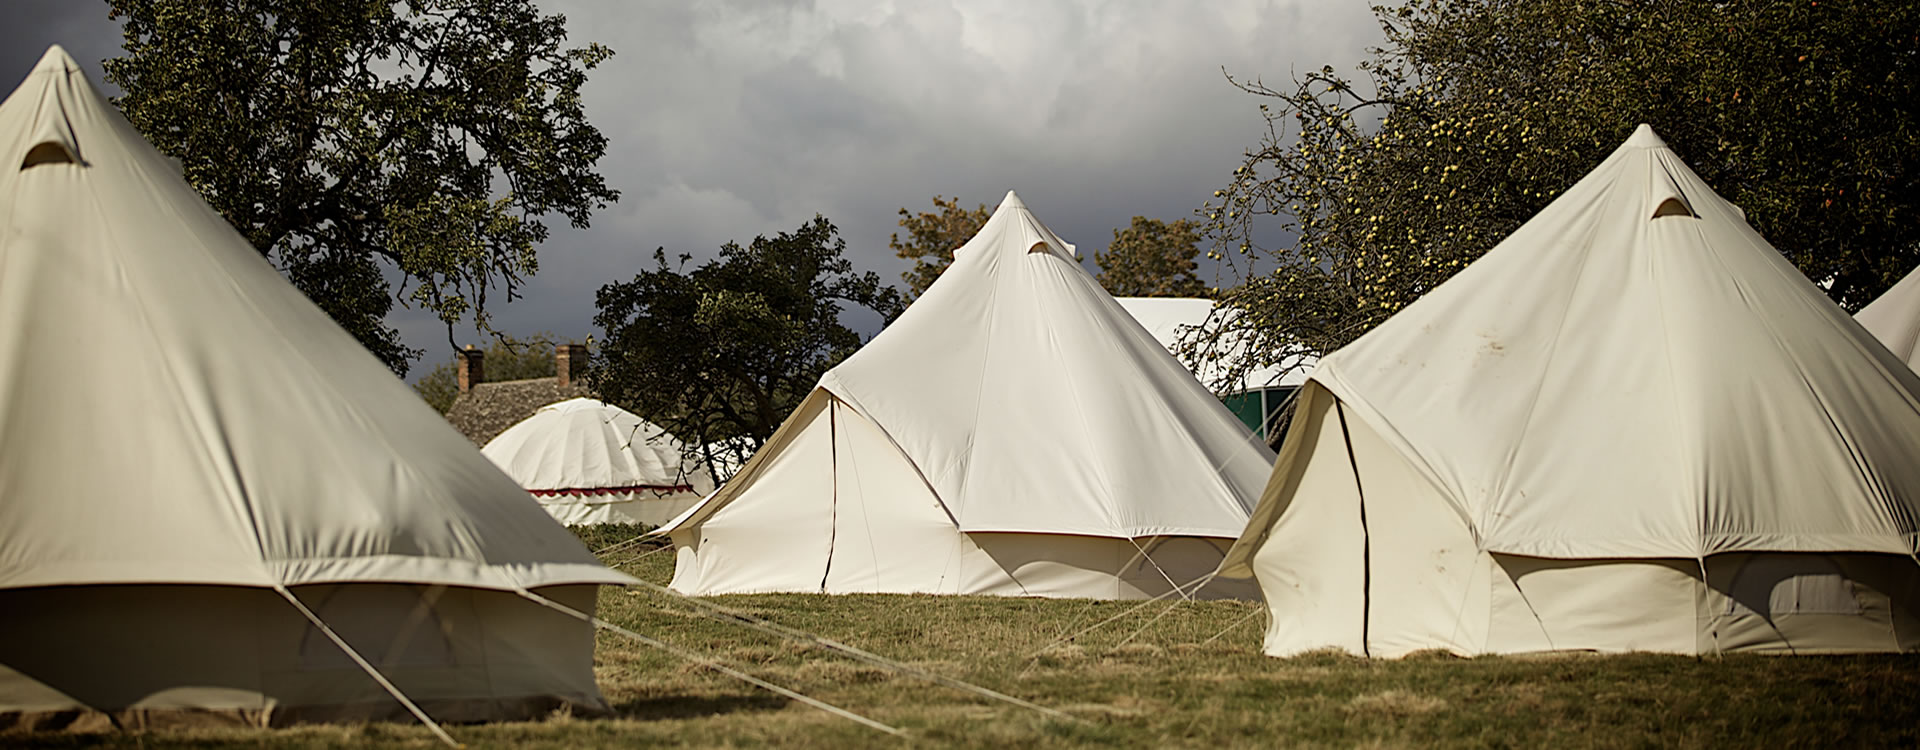 full-width-bell-tent-1 & Luxury Bell Tent Accommodation hire for parties festivals ...